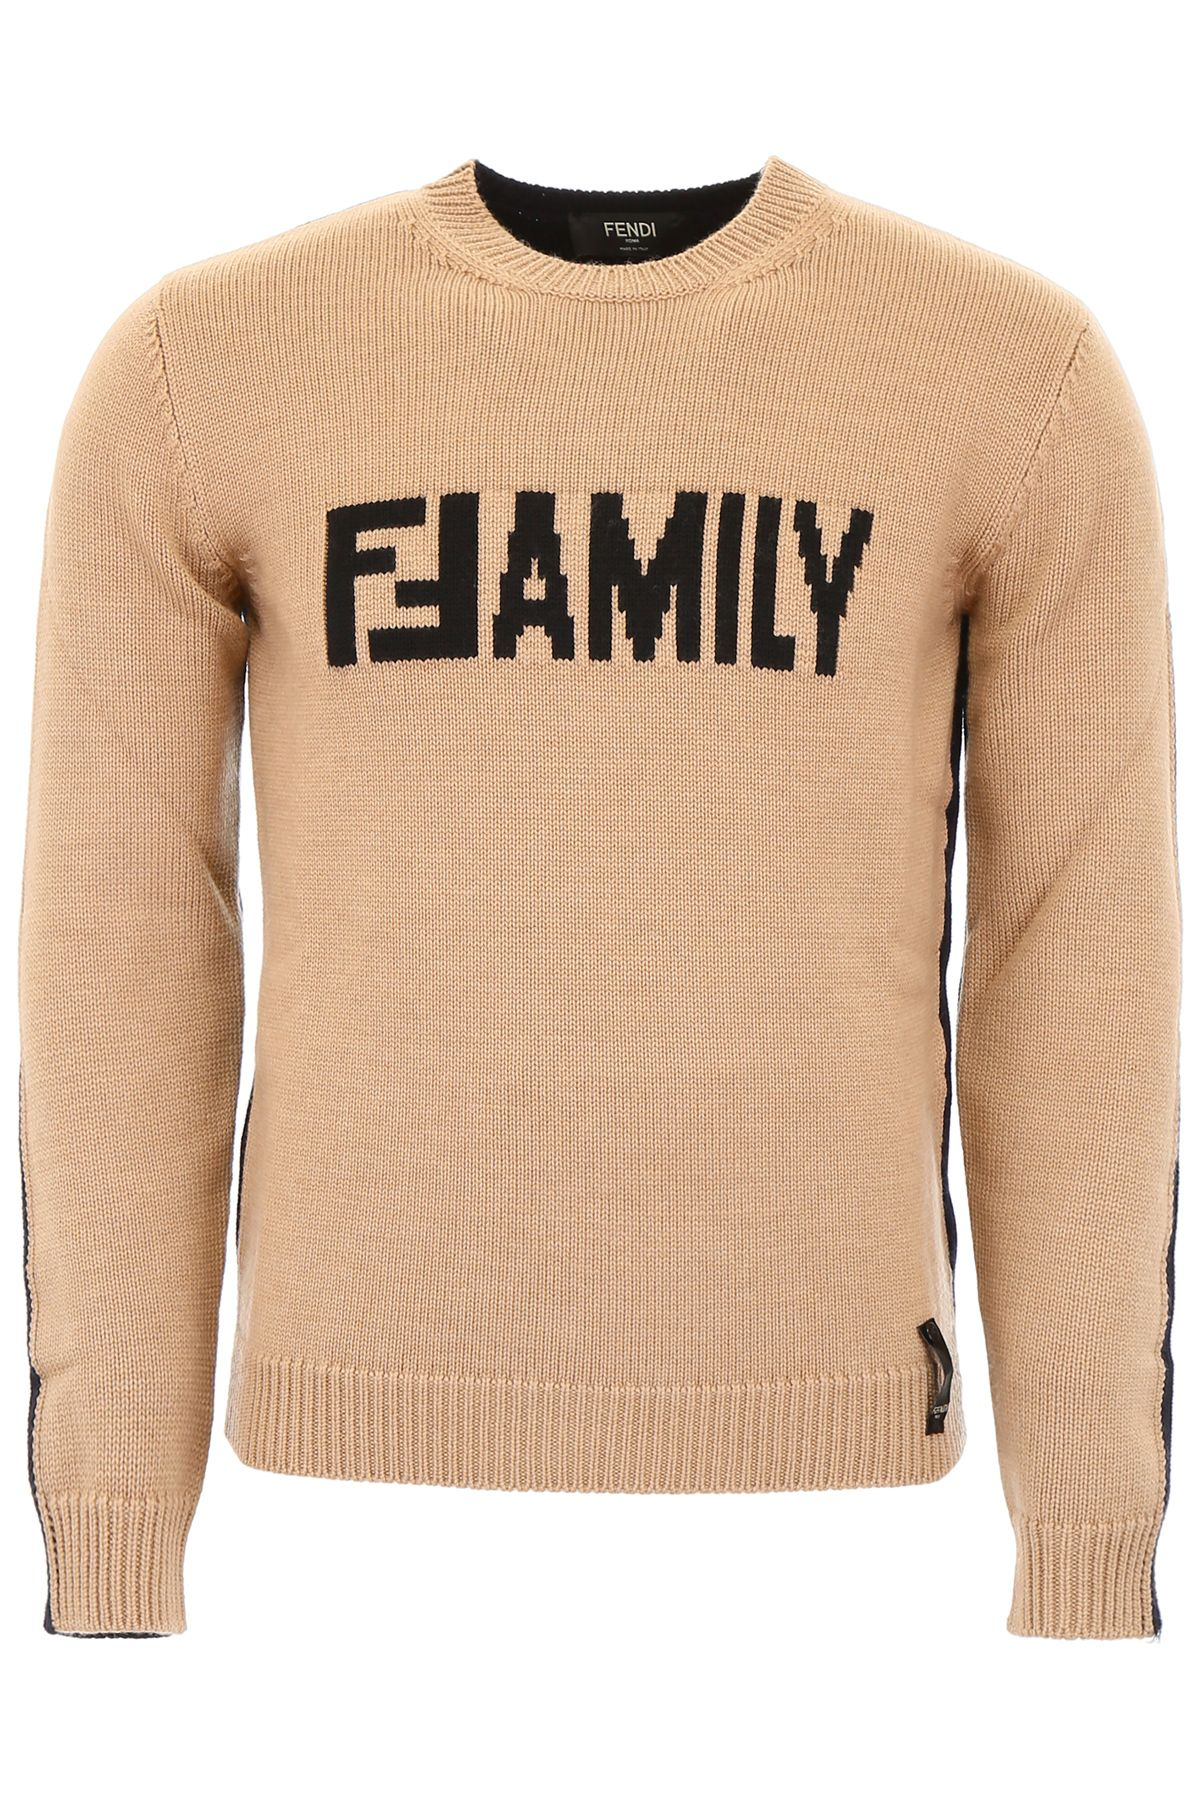 fendi clothing men crew neck pull with lettering